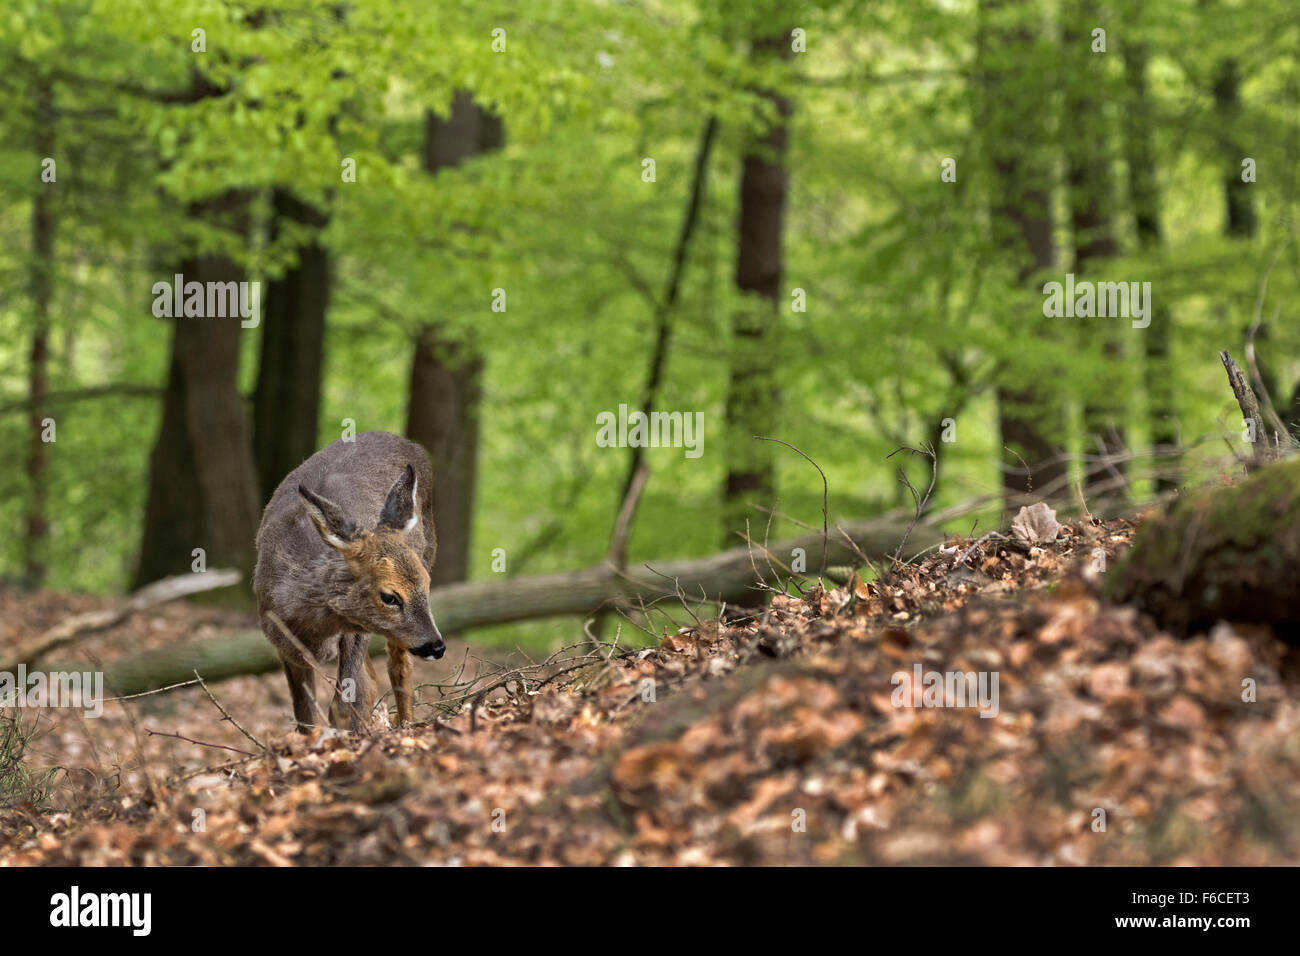 European roe deer standing in a forest / Capreolus capreolus - Stock Image